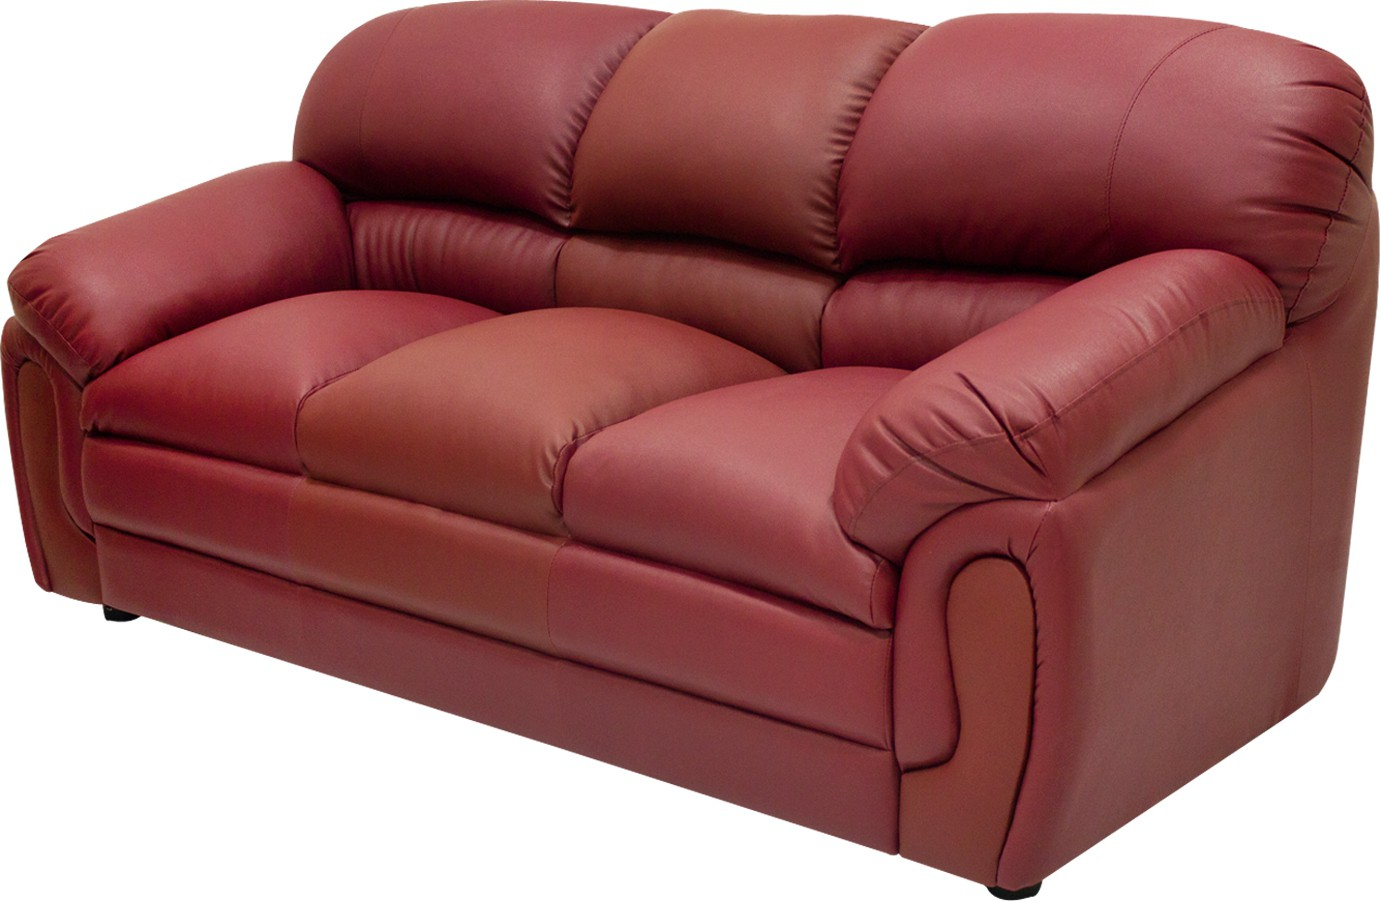 View Wood Pecker Leatherette Sectional Maroon Sofa Set(Configuration - U-Shaped) Price Online(Wood Pecker)